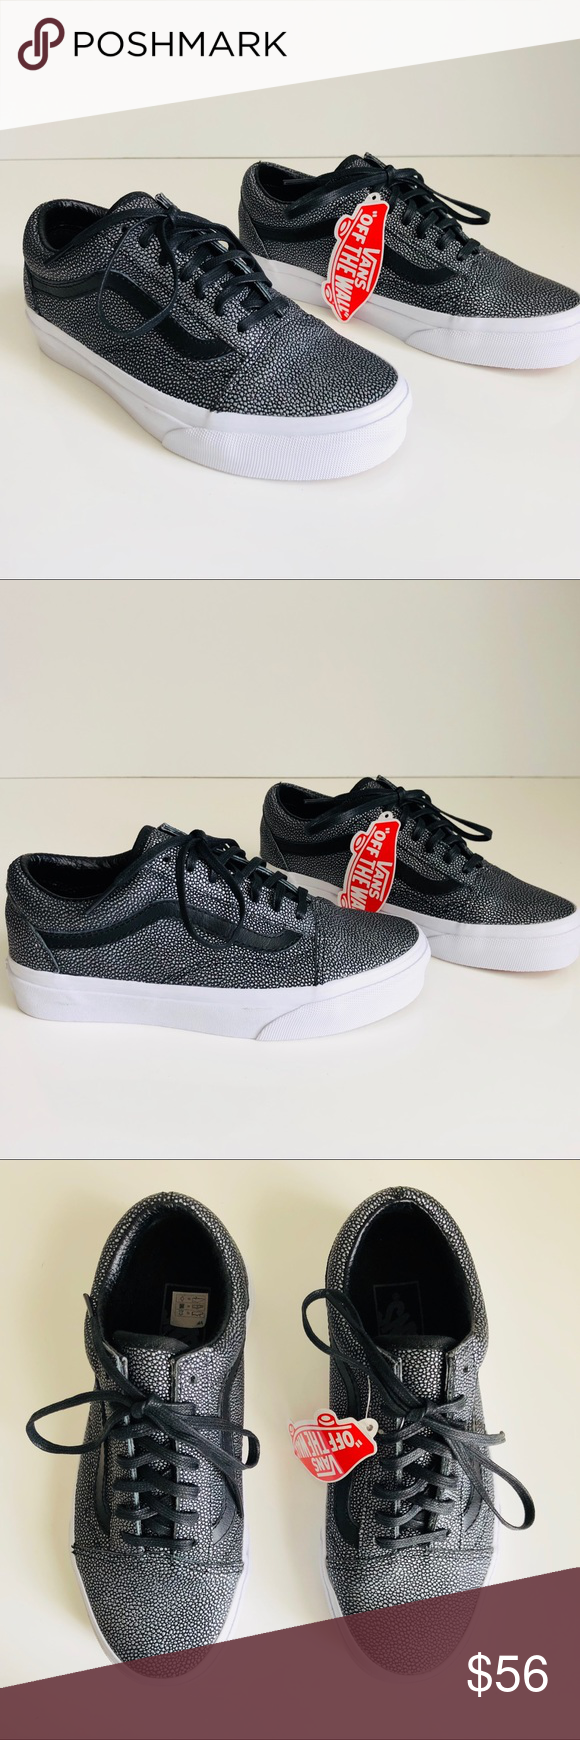 4c5b42aaed8ec3 Vans Old Skool Embossed Stingray Black •Embossed stingray leather upper  •Textile lining •Rubber sole •Black laces and logo •Women 5